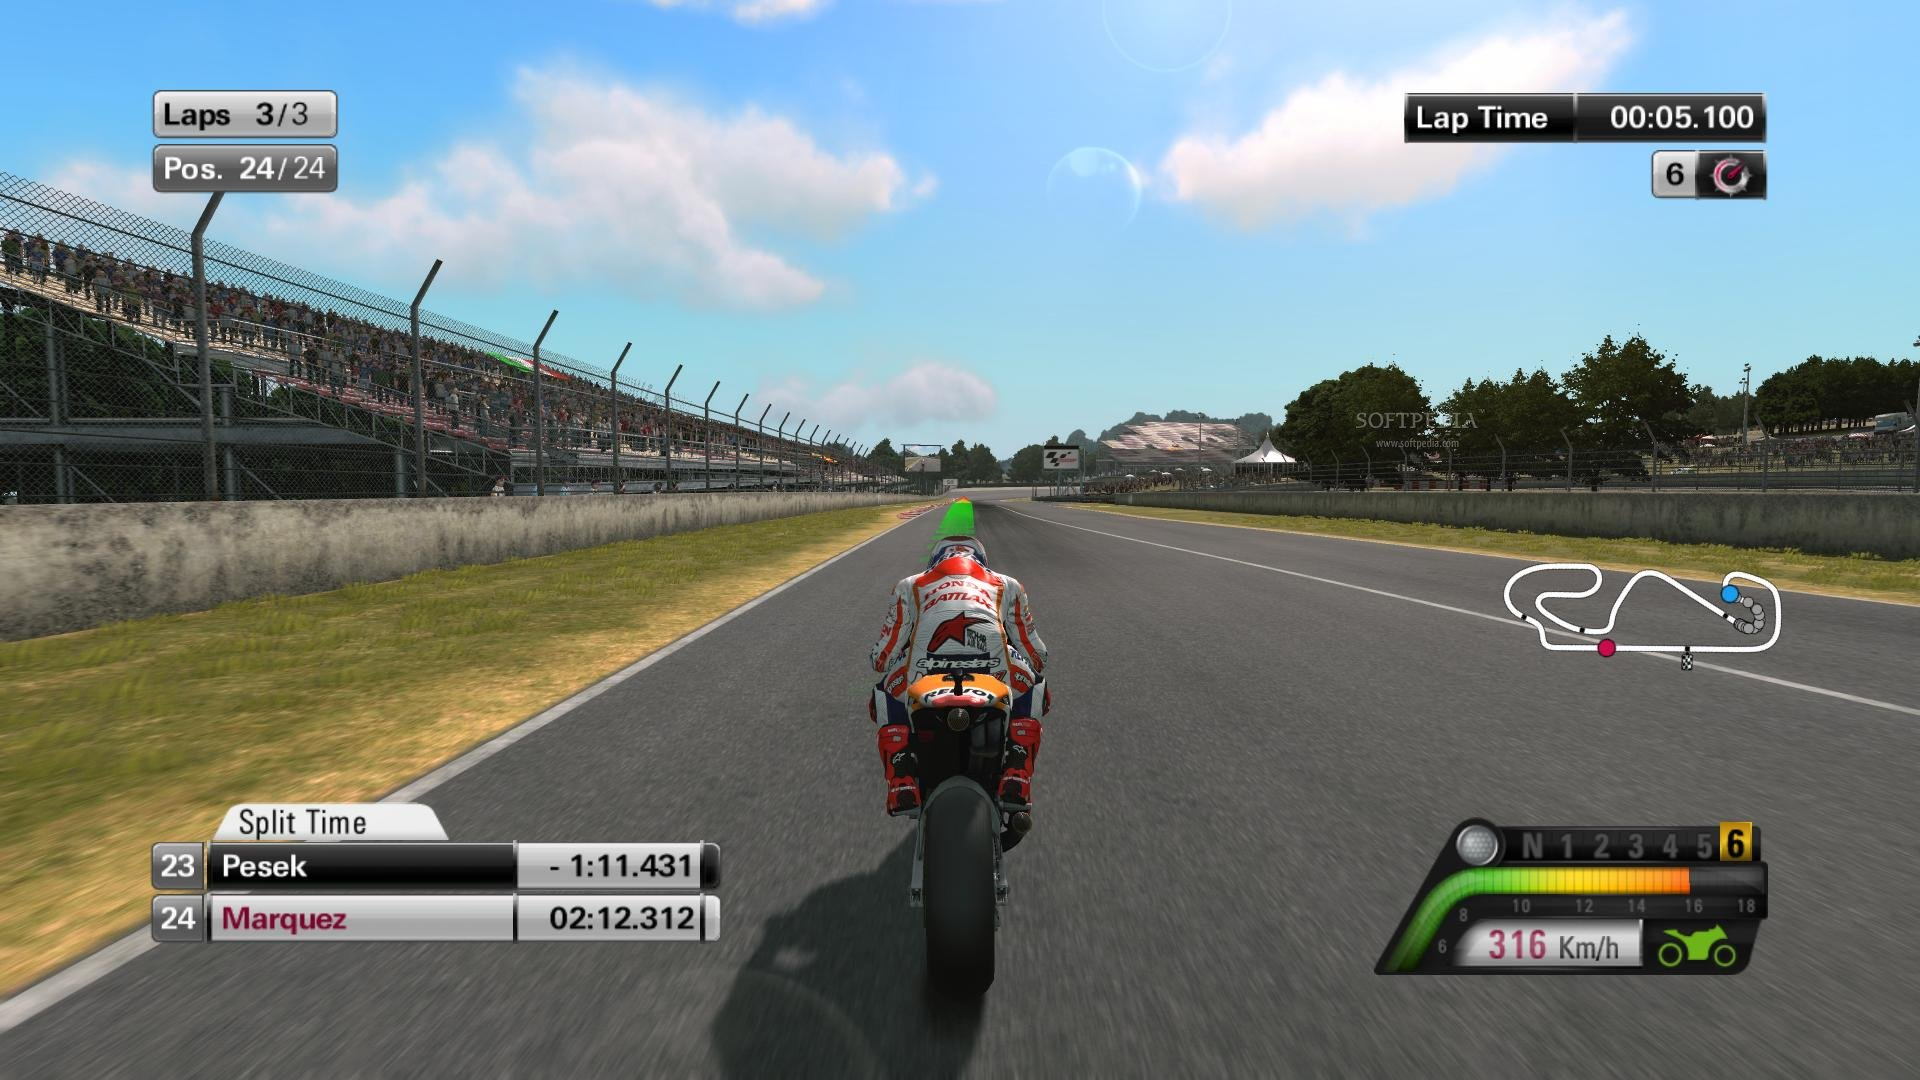 Moto Gp Racing Game Online Play Free | Automotivegarage.org